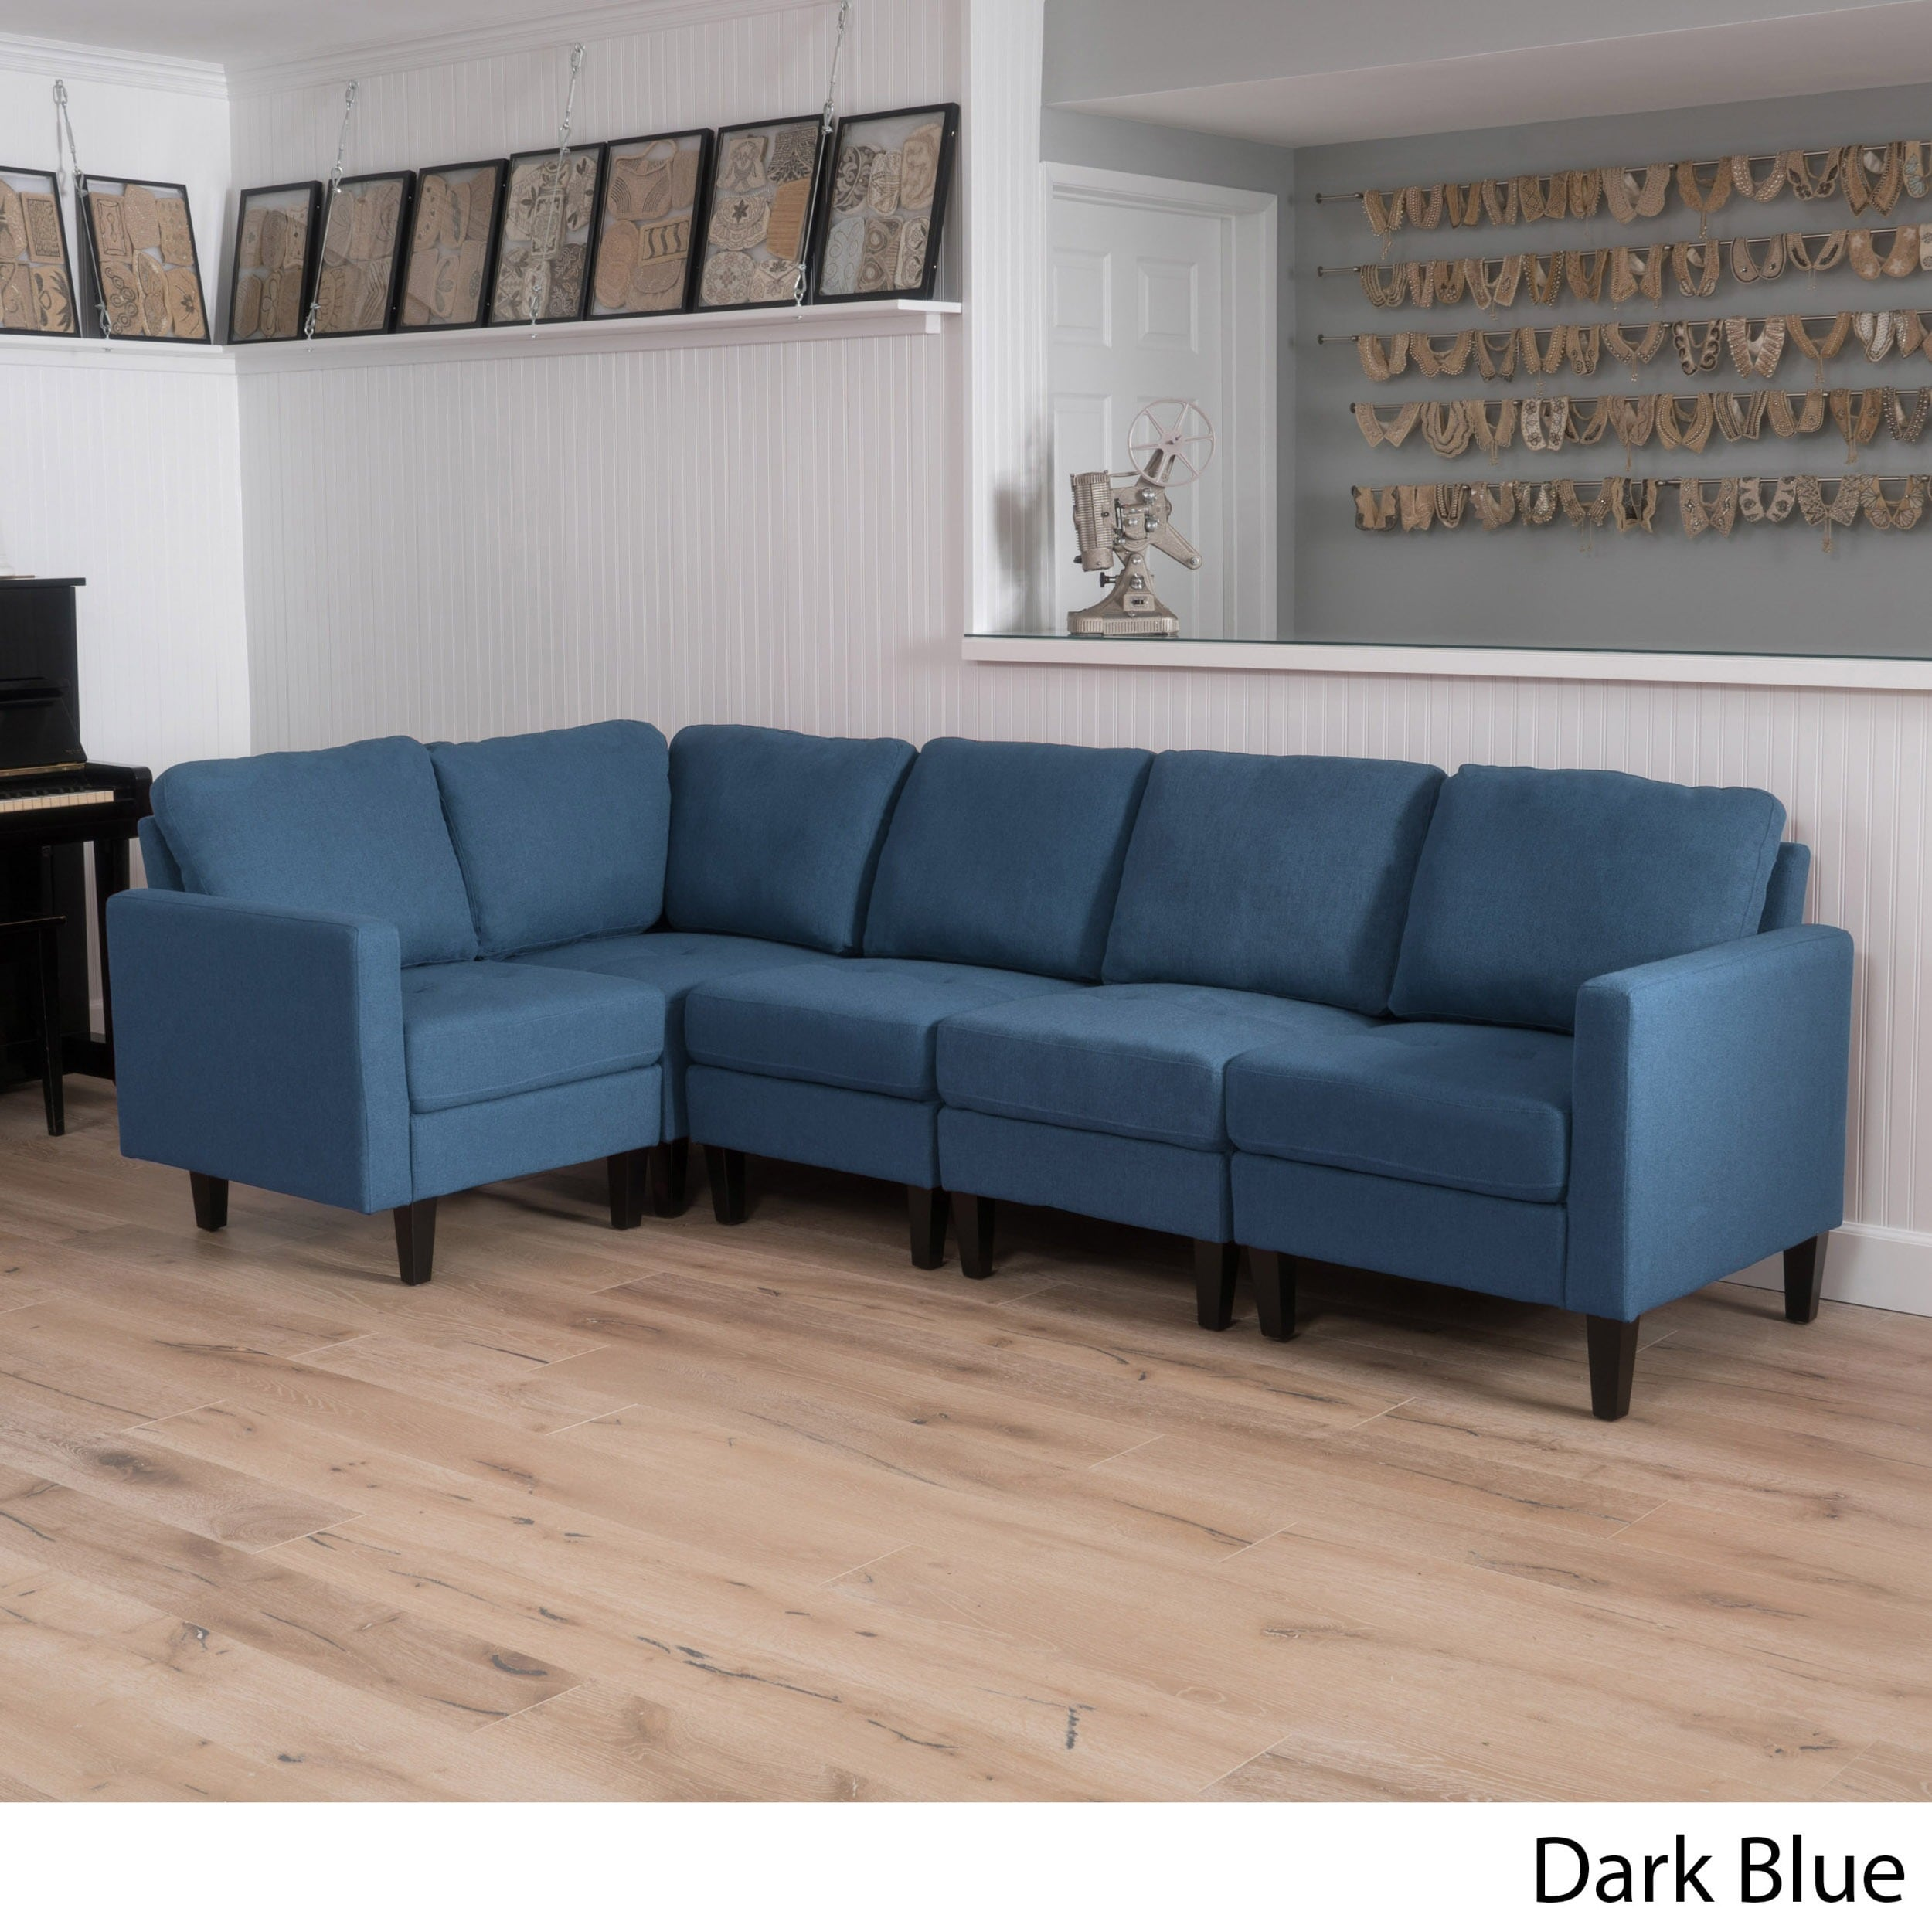 Sectional Sofas For Less Sale Ends in 1 Day Overstockcom